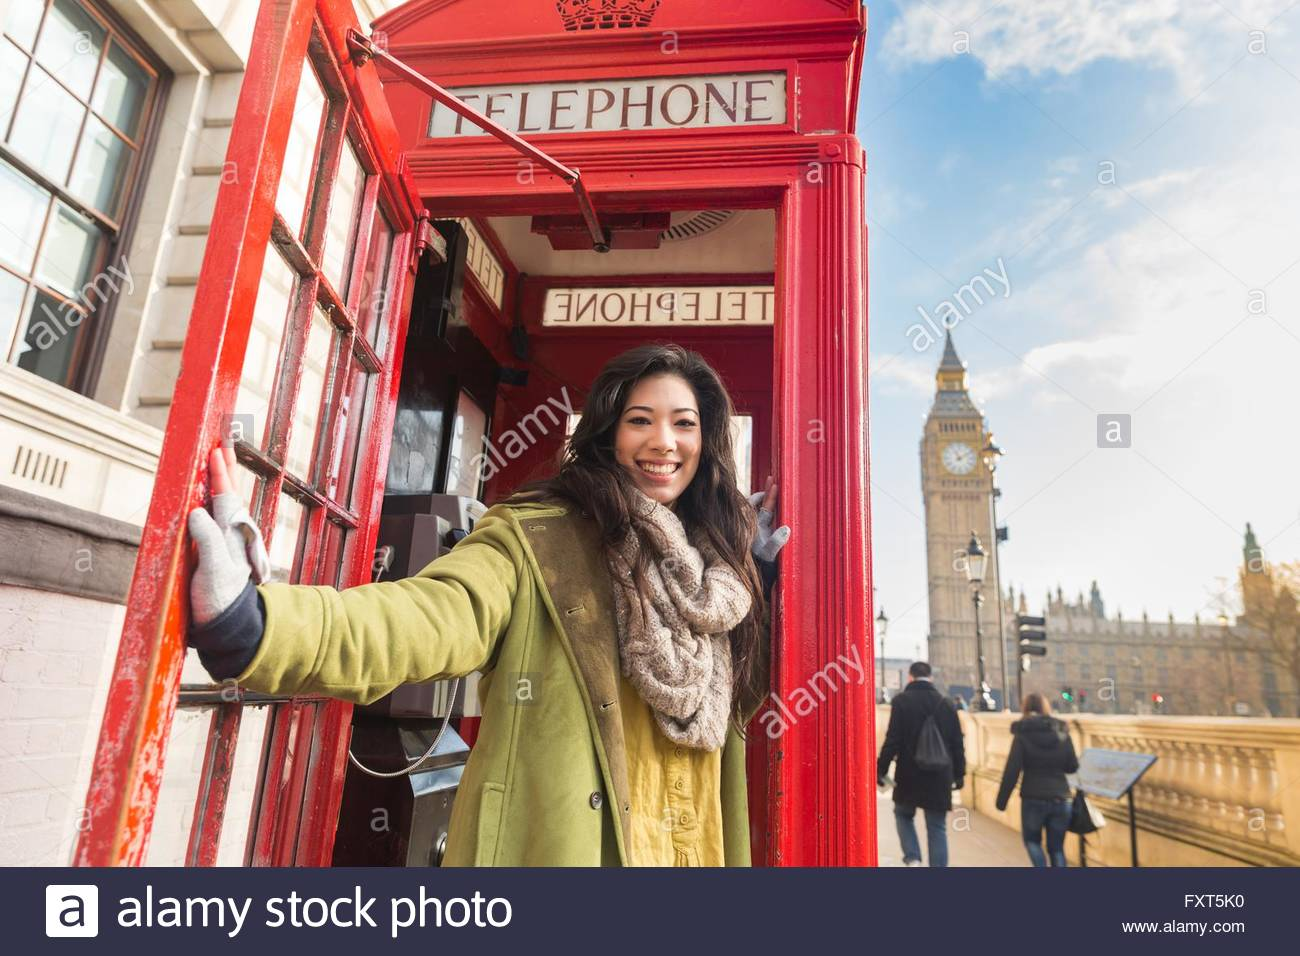 Young woman in traditional red phone booth holding door open looking at camera smiling London UK  sc 1 st  Alamy & Young woman in traditional red phone booth holding door open looking ...